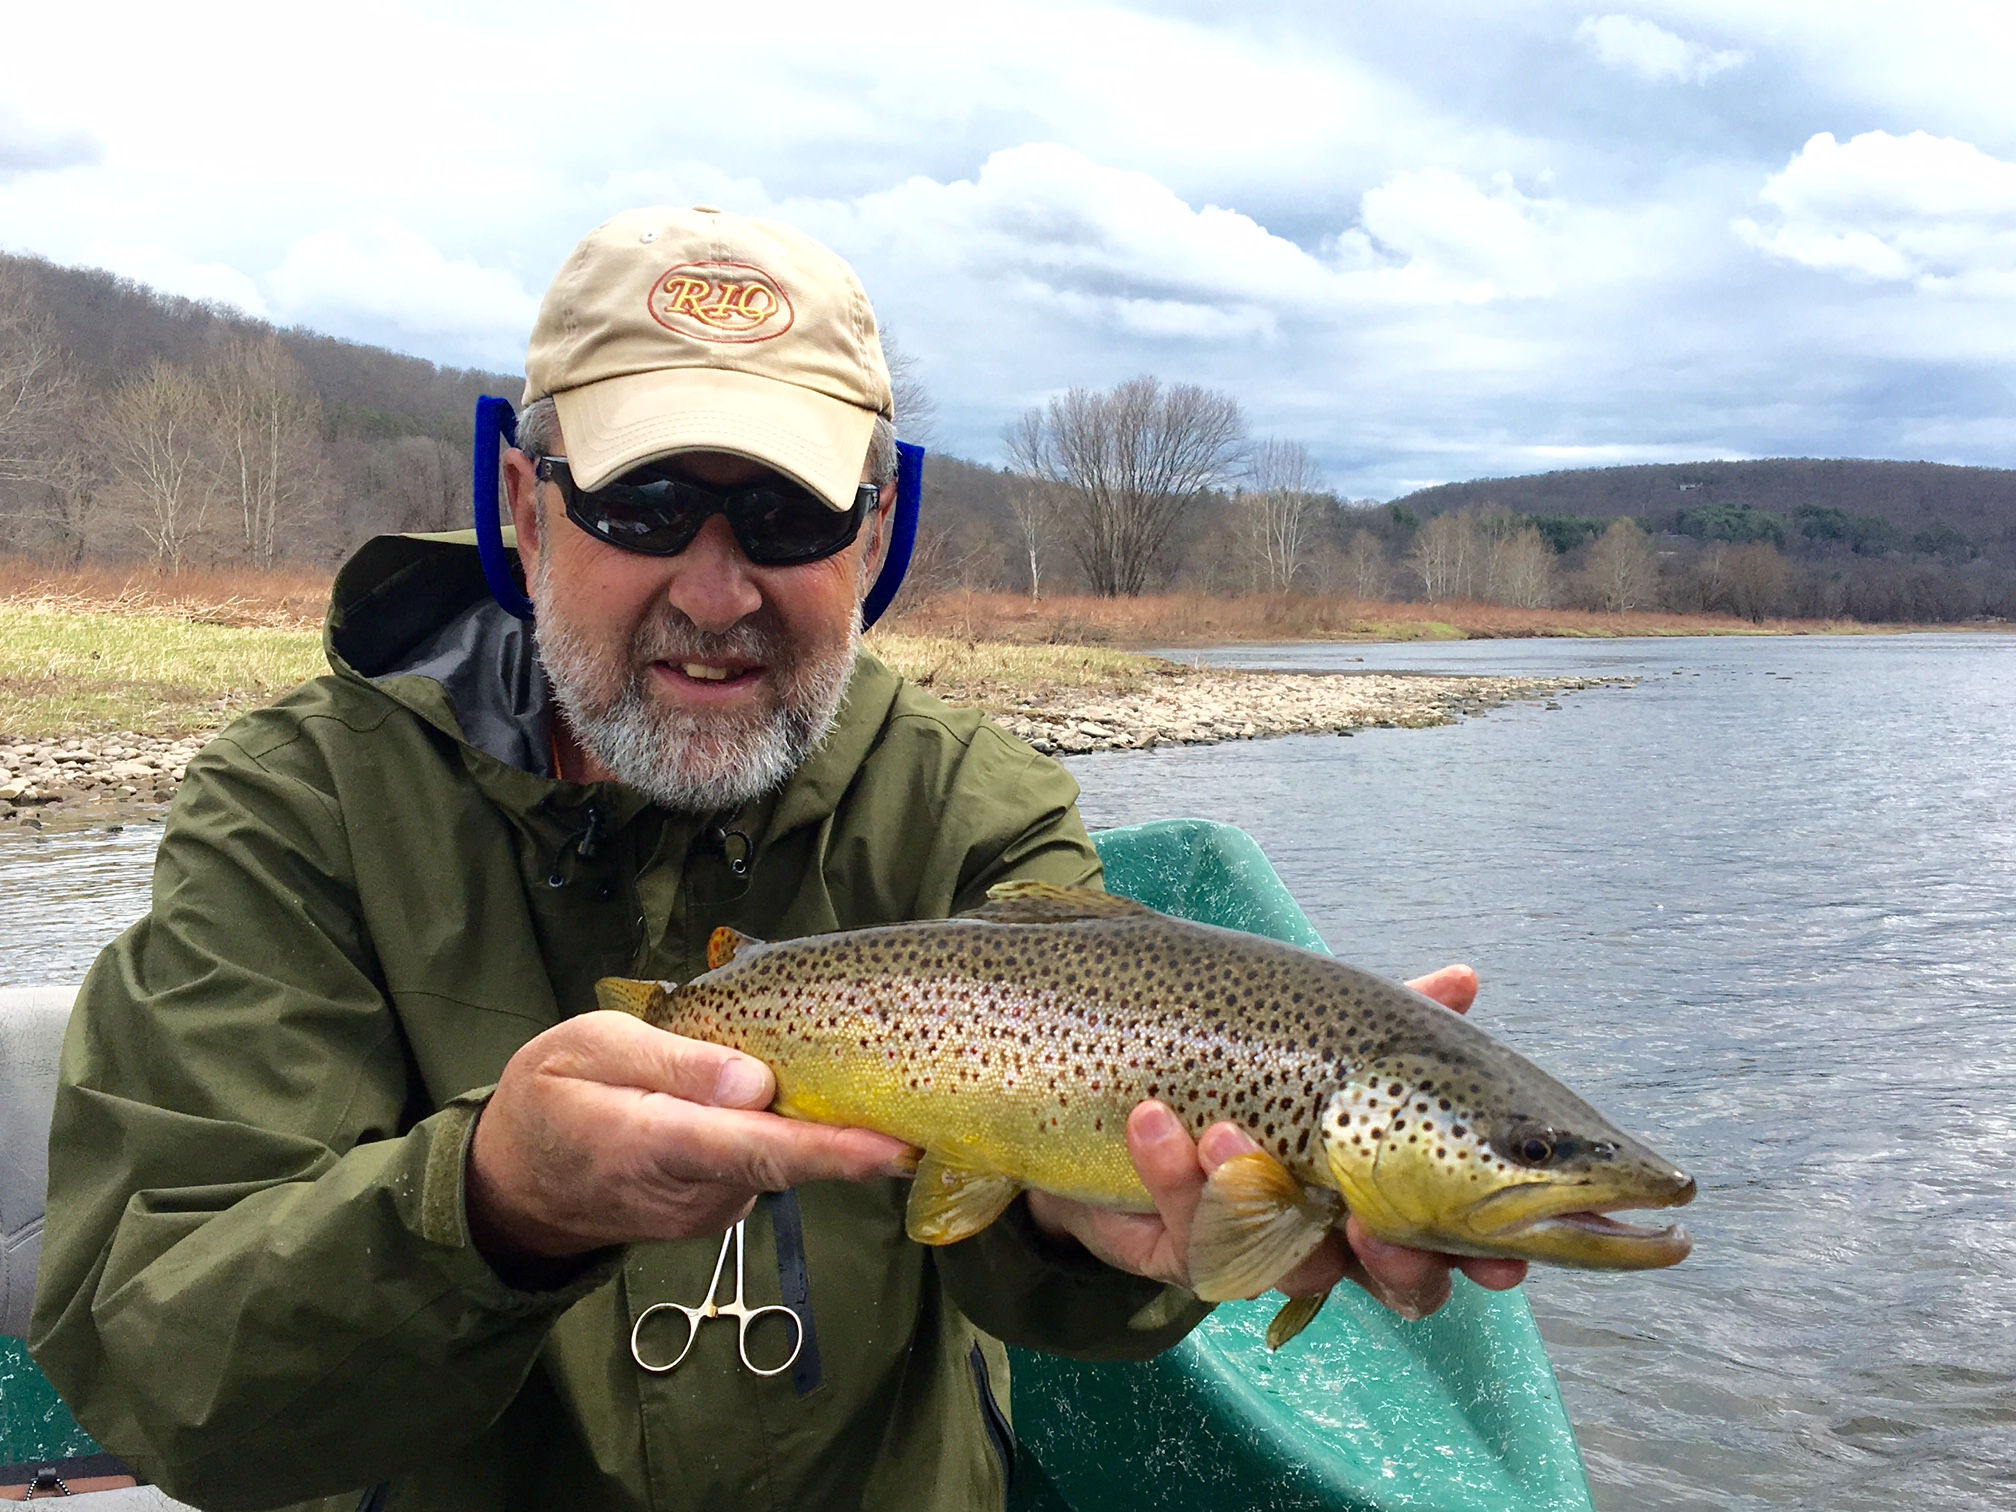 4/1/16 A healthy main stem Brown trout for Guide Mike P.